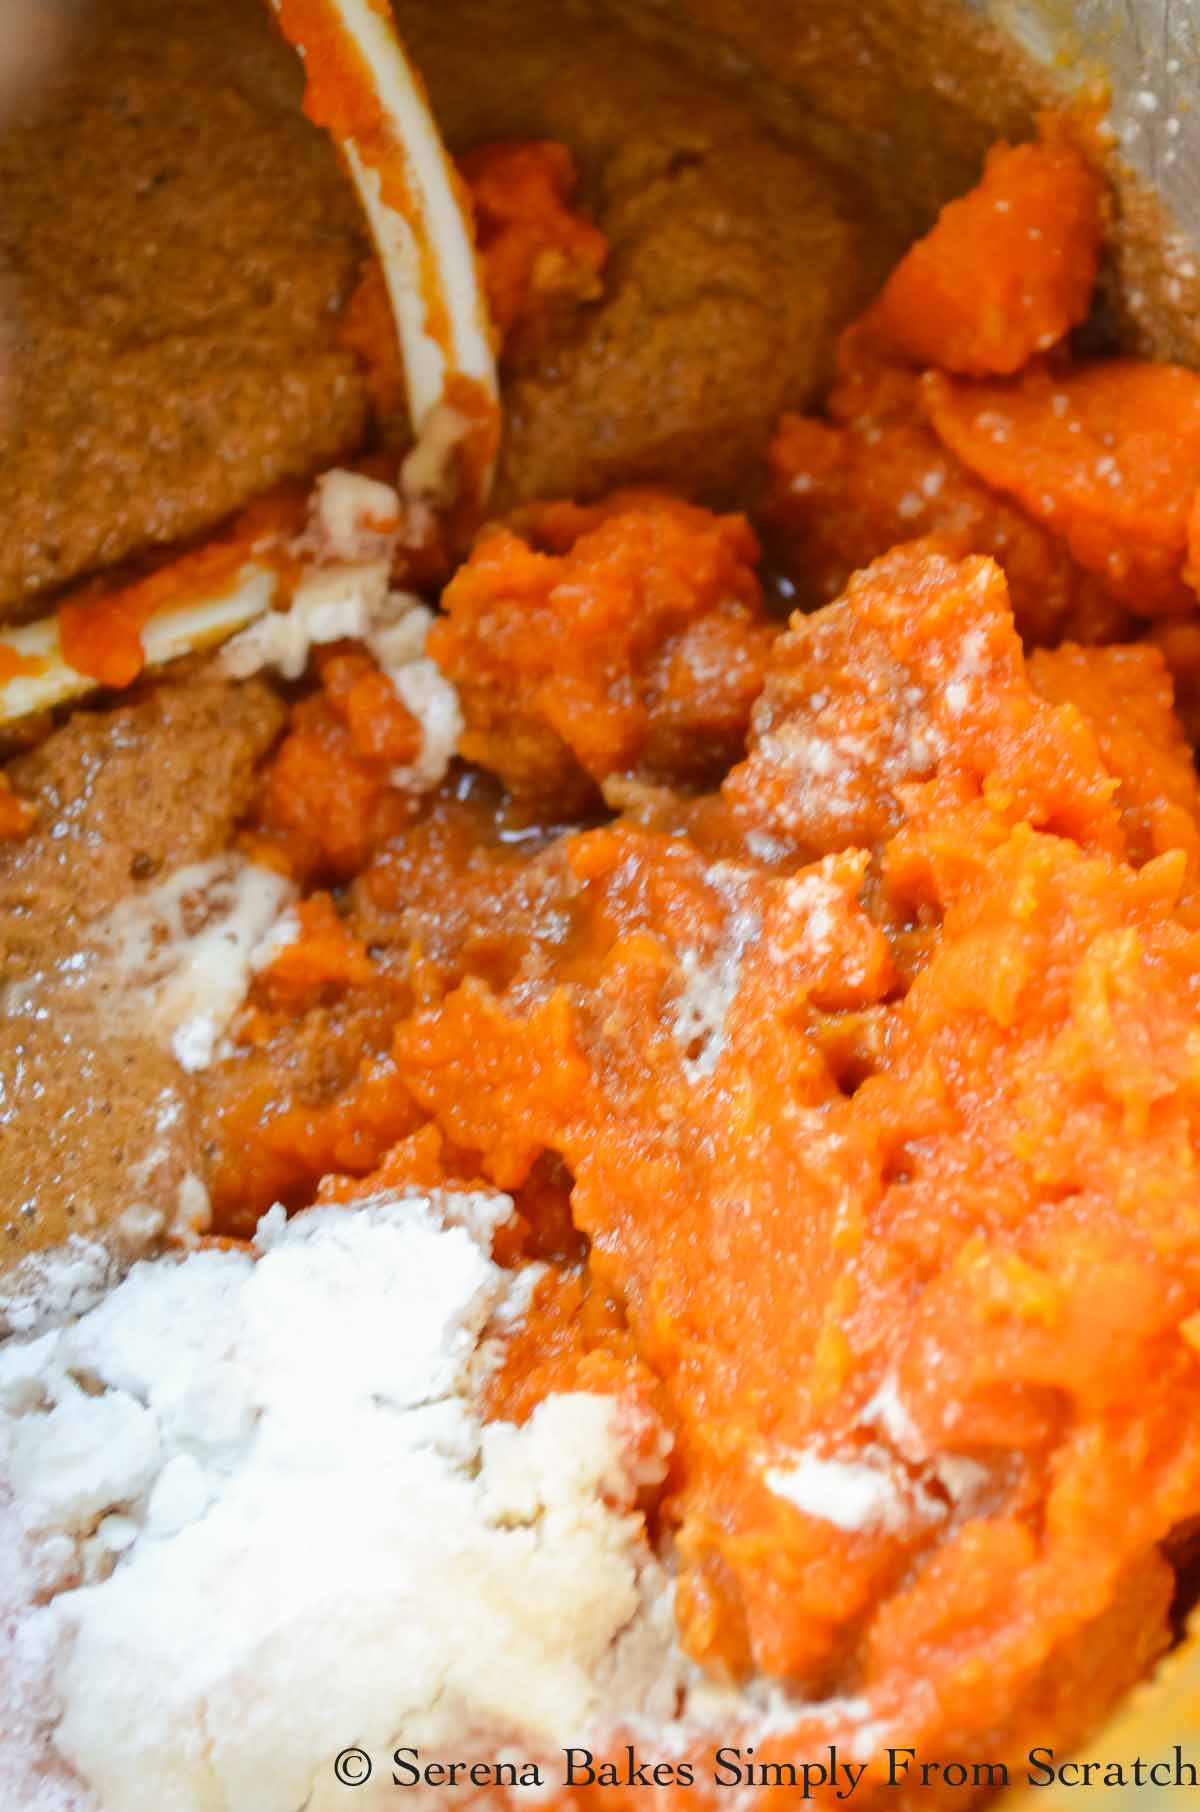 Pumpkin Puree, Baking Powder, Baking Soda, and Salt added to Pumpkin Bread batter in a stainless steel mixing bowl.